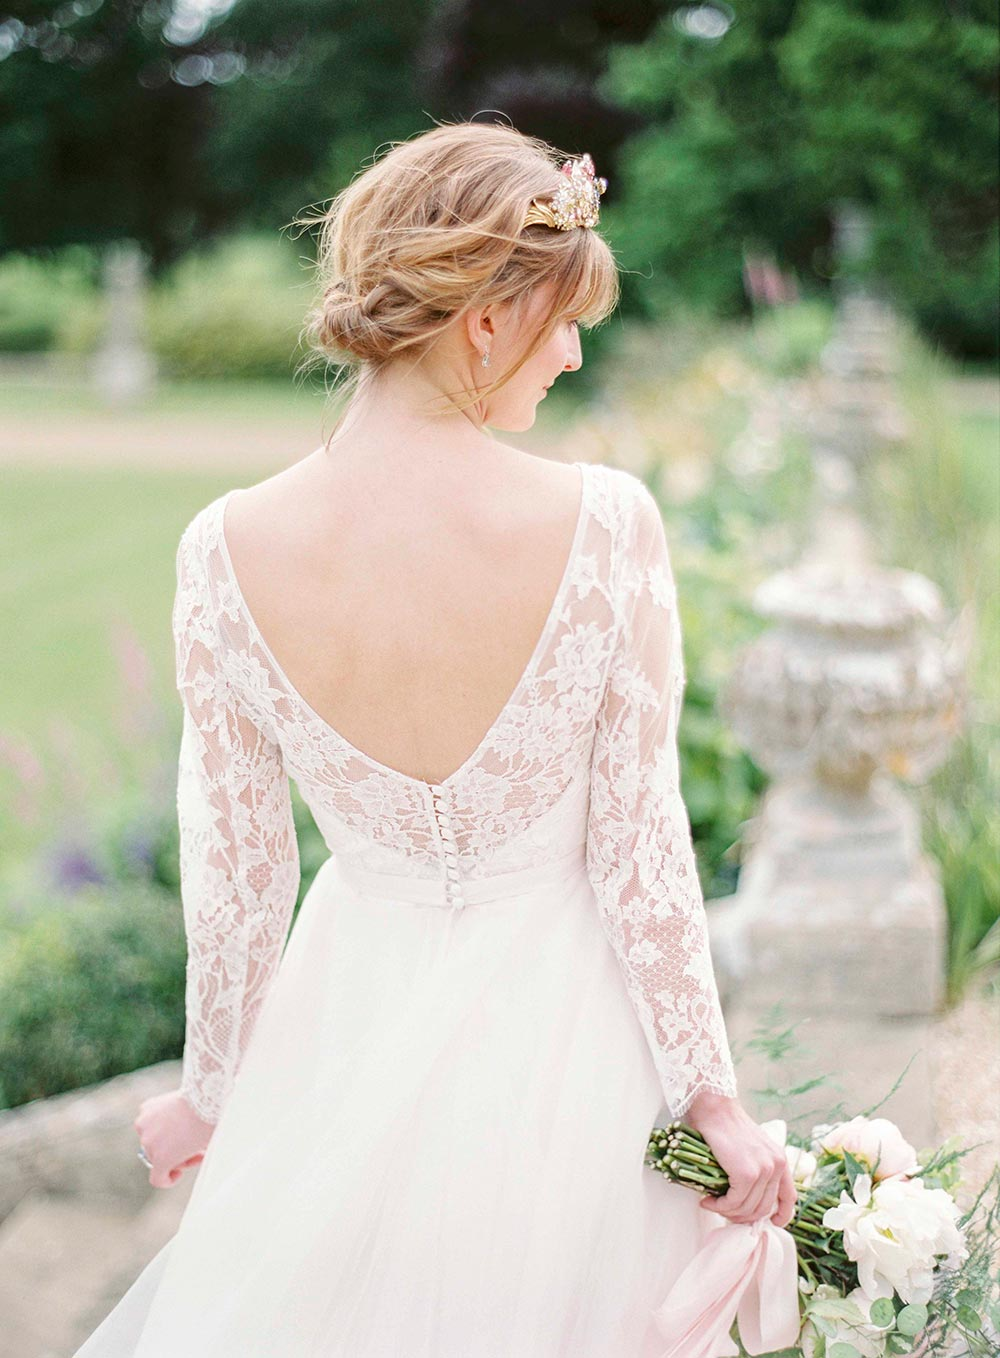 lace wedding dress with bridal headpiece